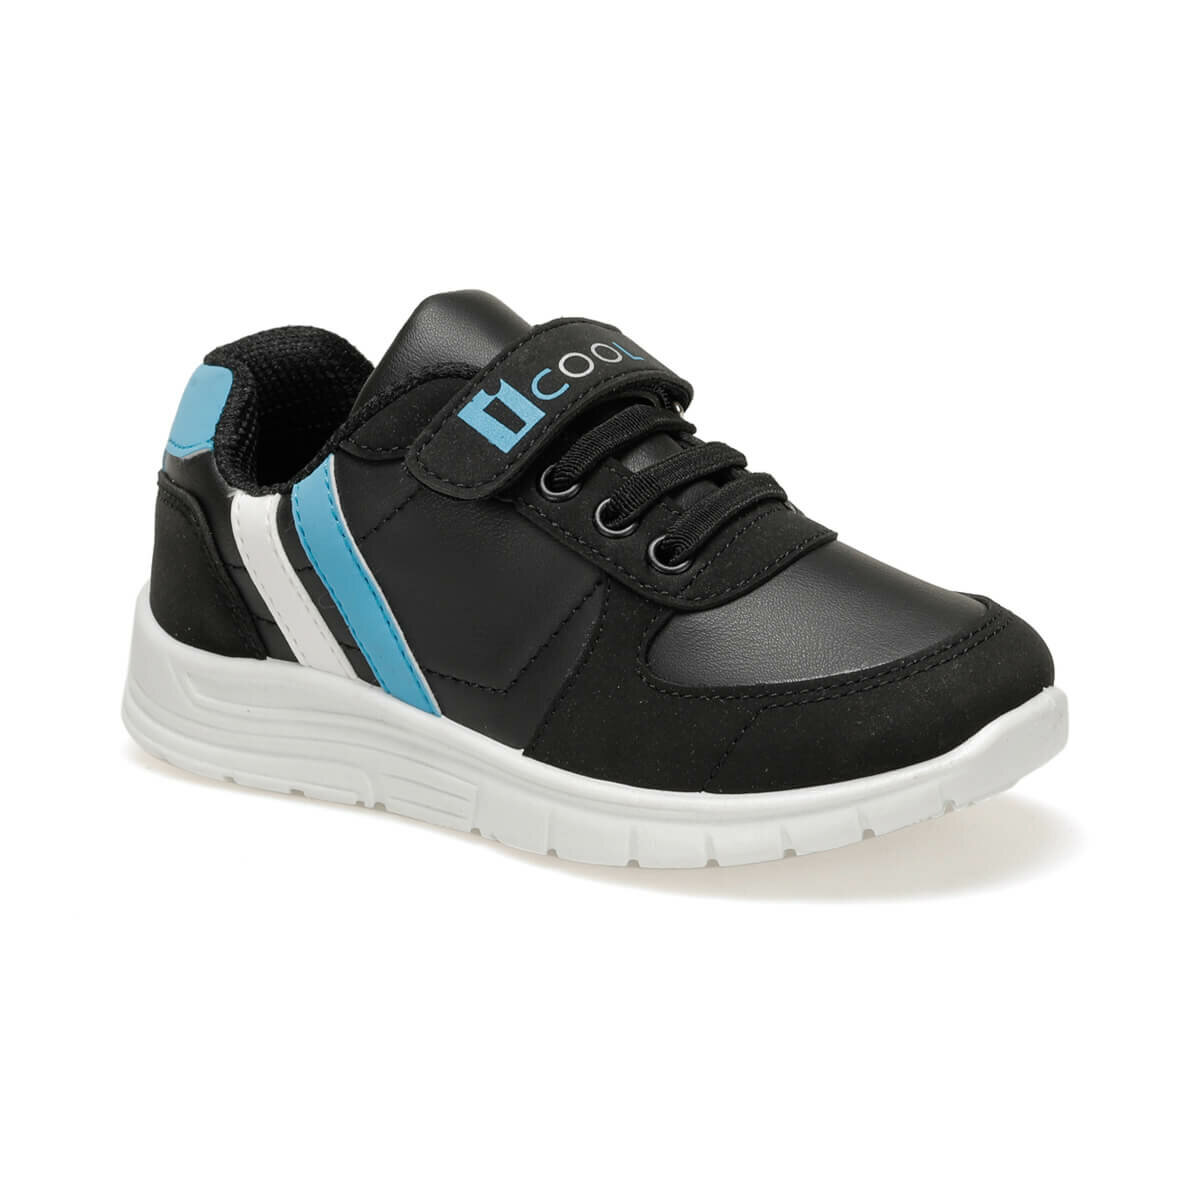 FLO DEMBA.2 Black Male Child Shoes I-Cool